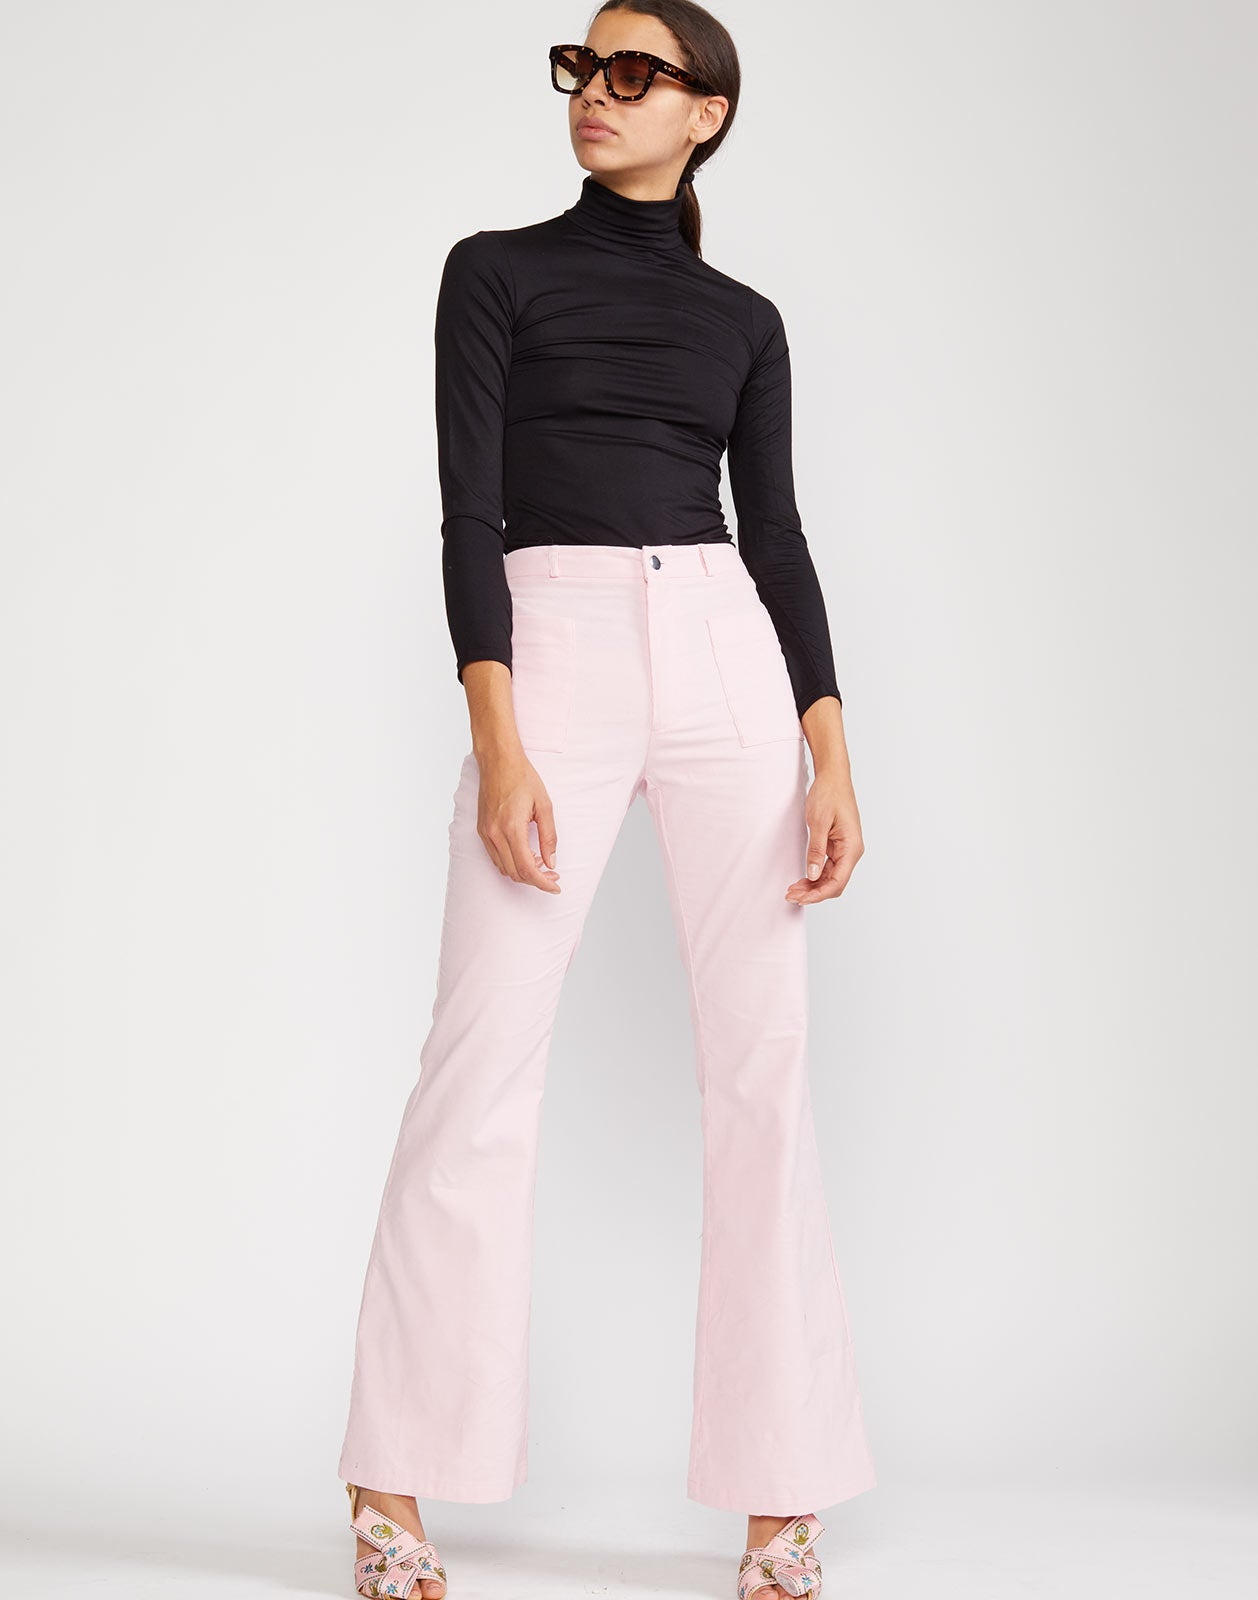 High rise pant with front zip opening